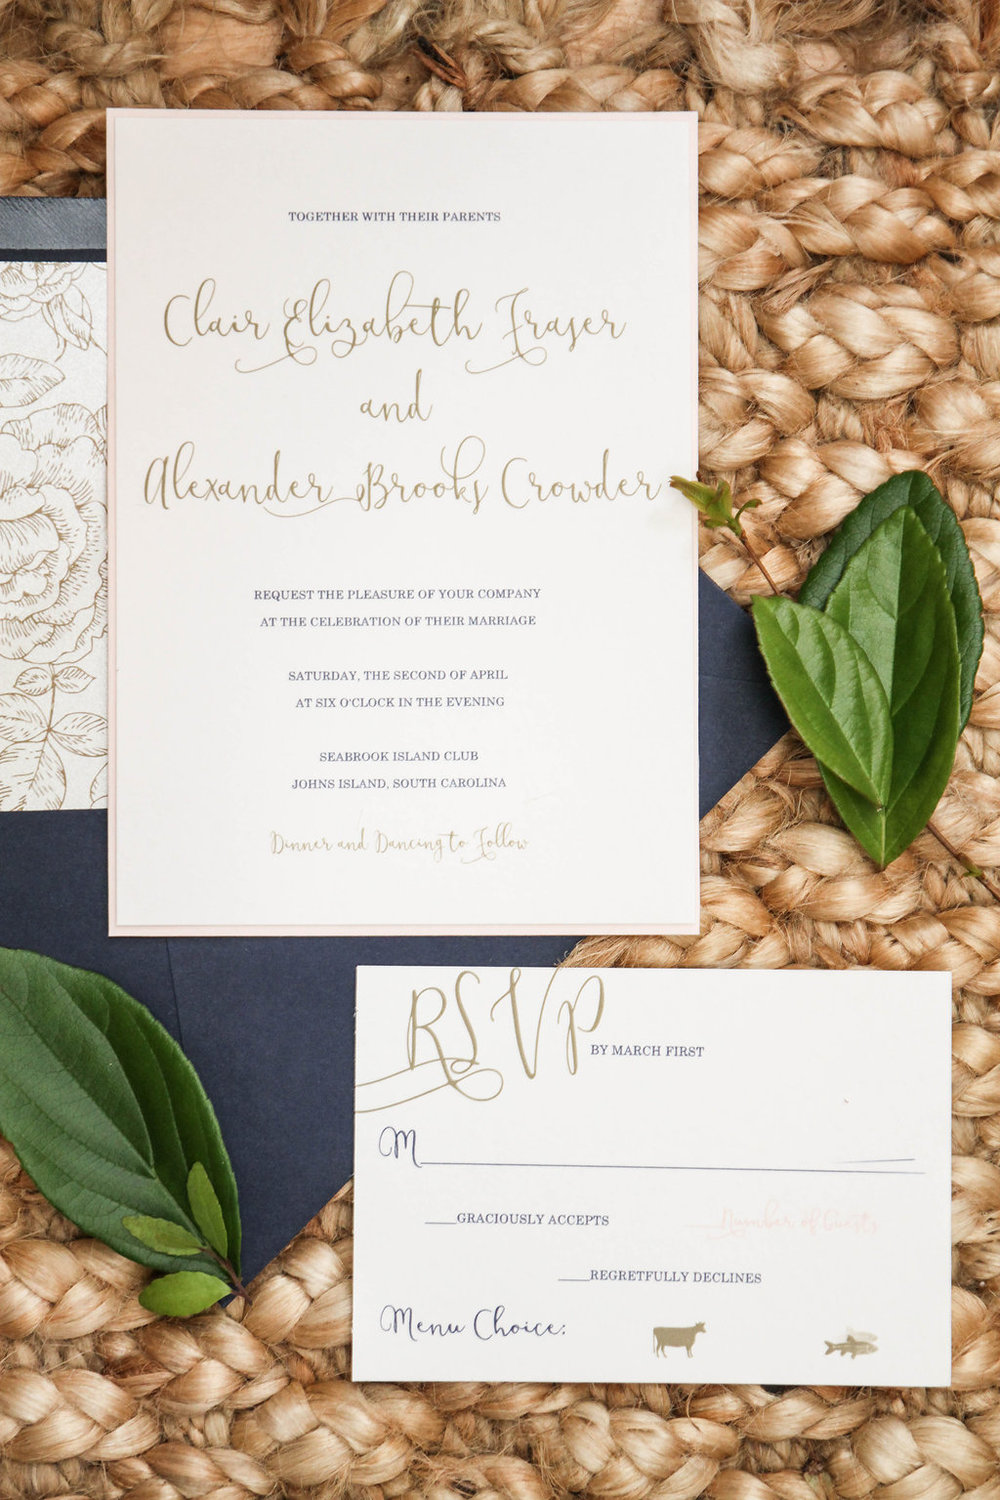 Invitations at Seabrook Island Club wedding in Charleston, South Carolina by Lowcounty vendors Chelsea Paige Photography, Miele Events